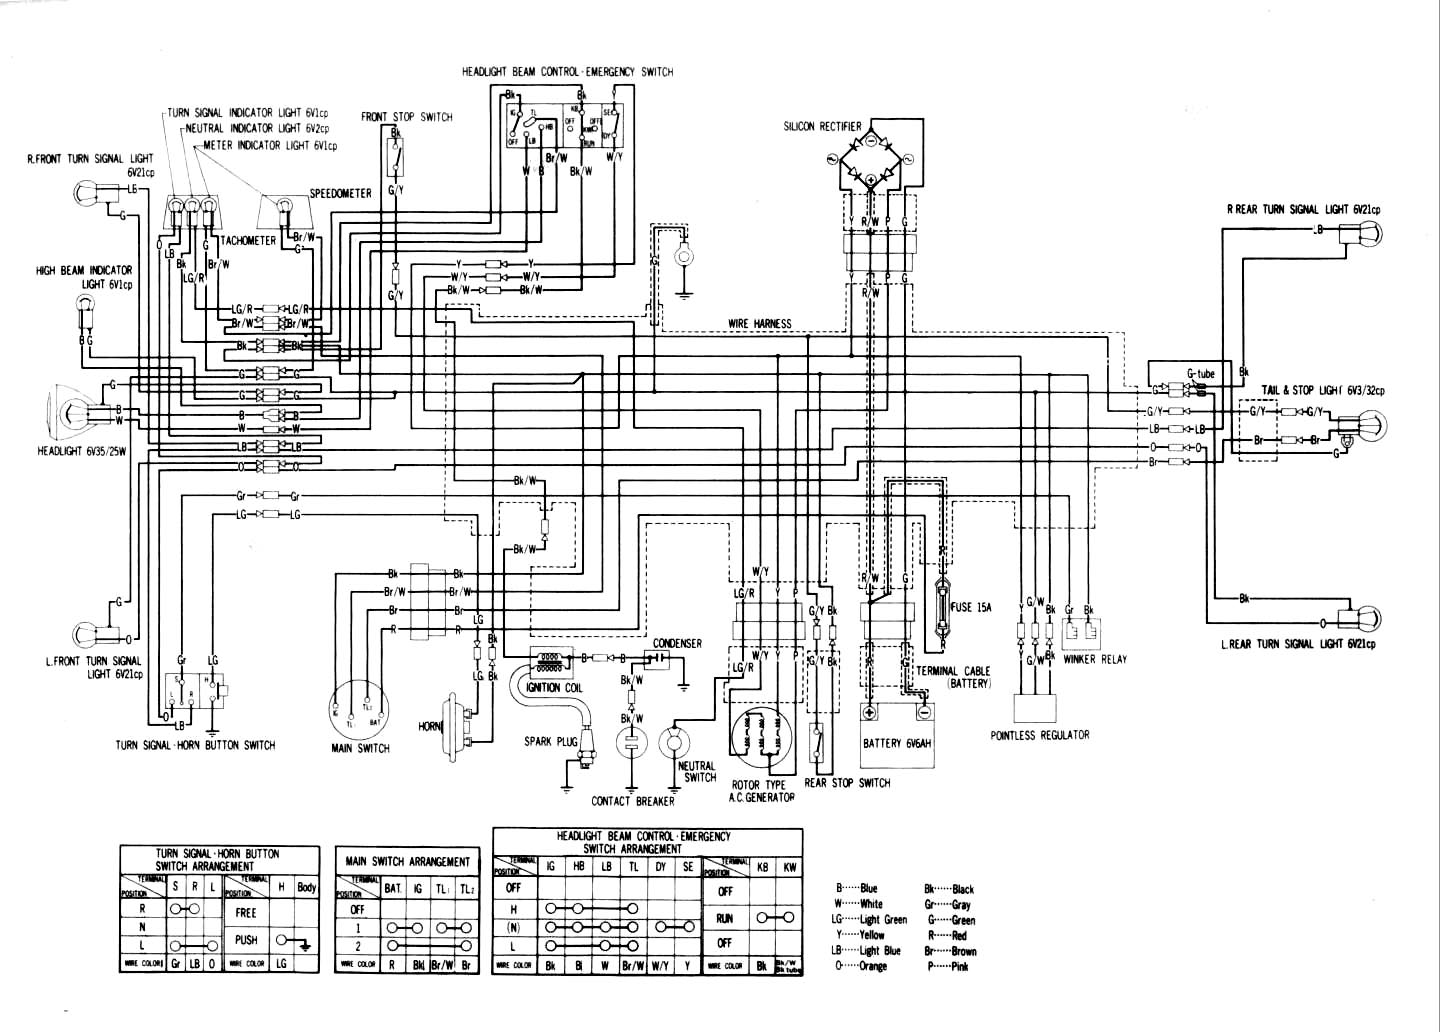 wiring diagramsxl175 (unknown year but typical of mid 1970\u0027s honda